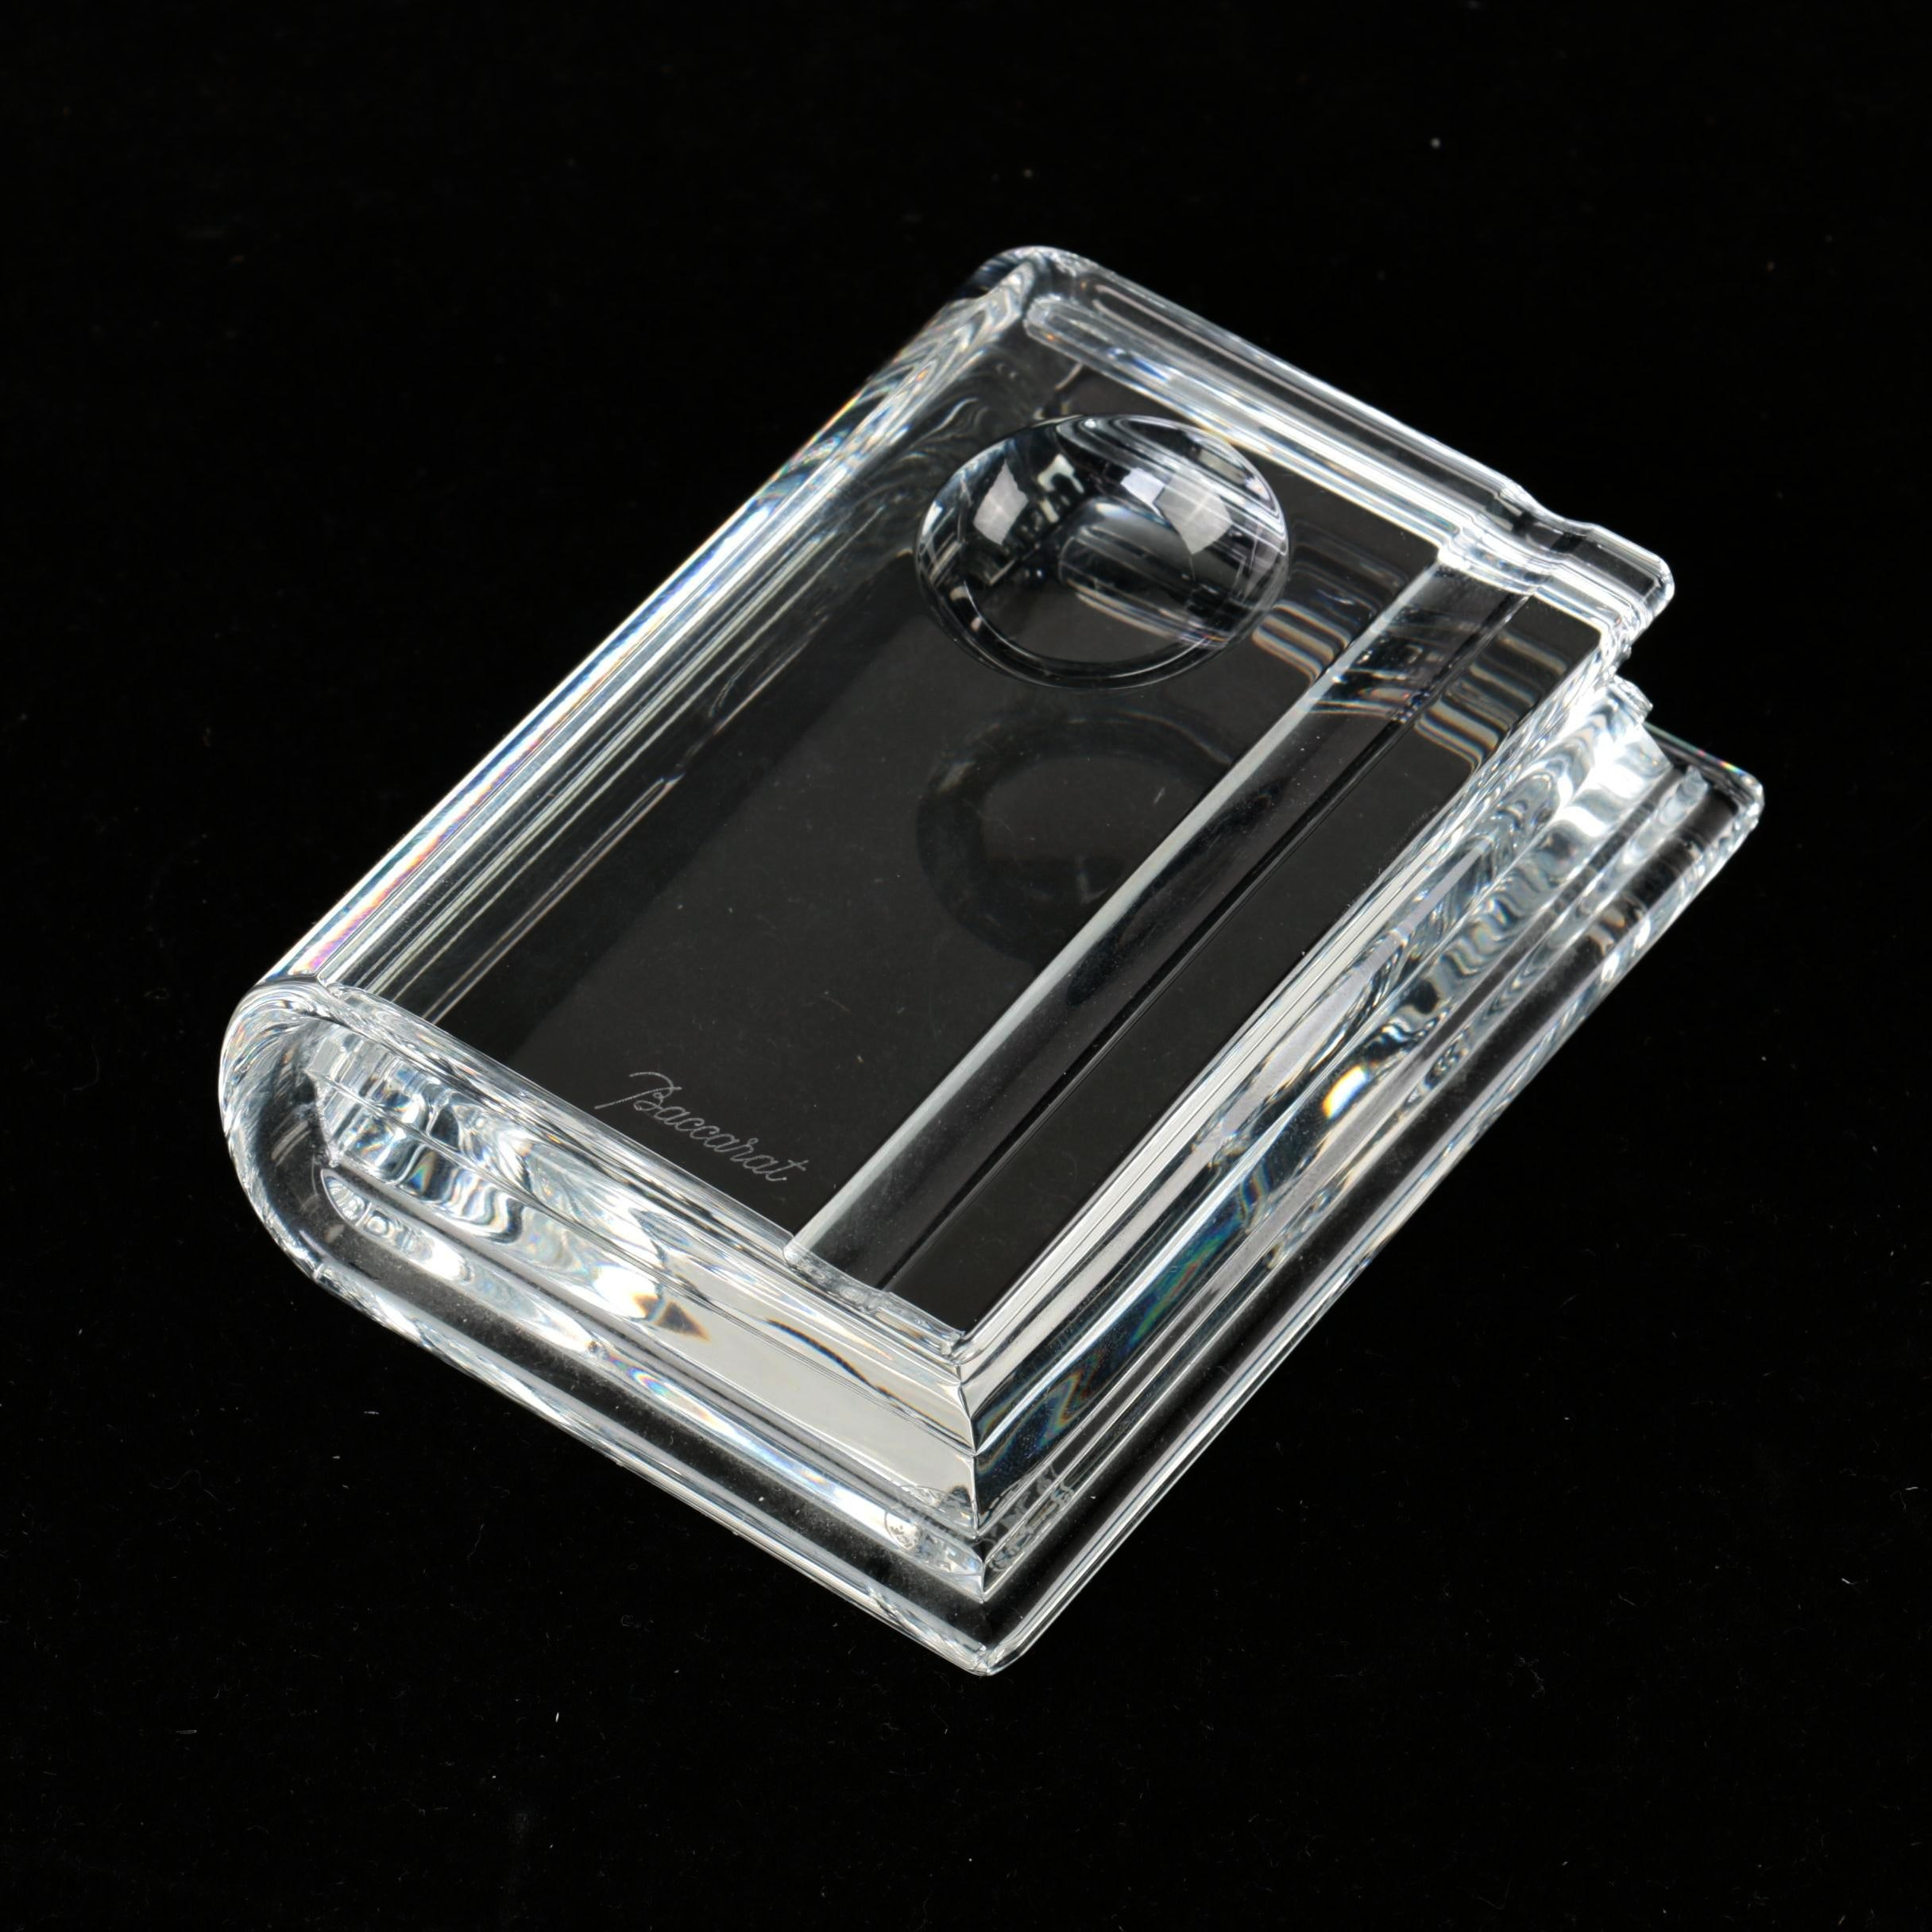 Baccarat Crystal Book, Pen Rest, and Inkwell Paperweight